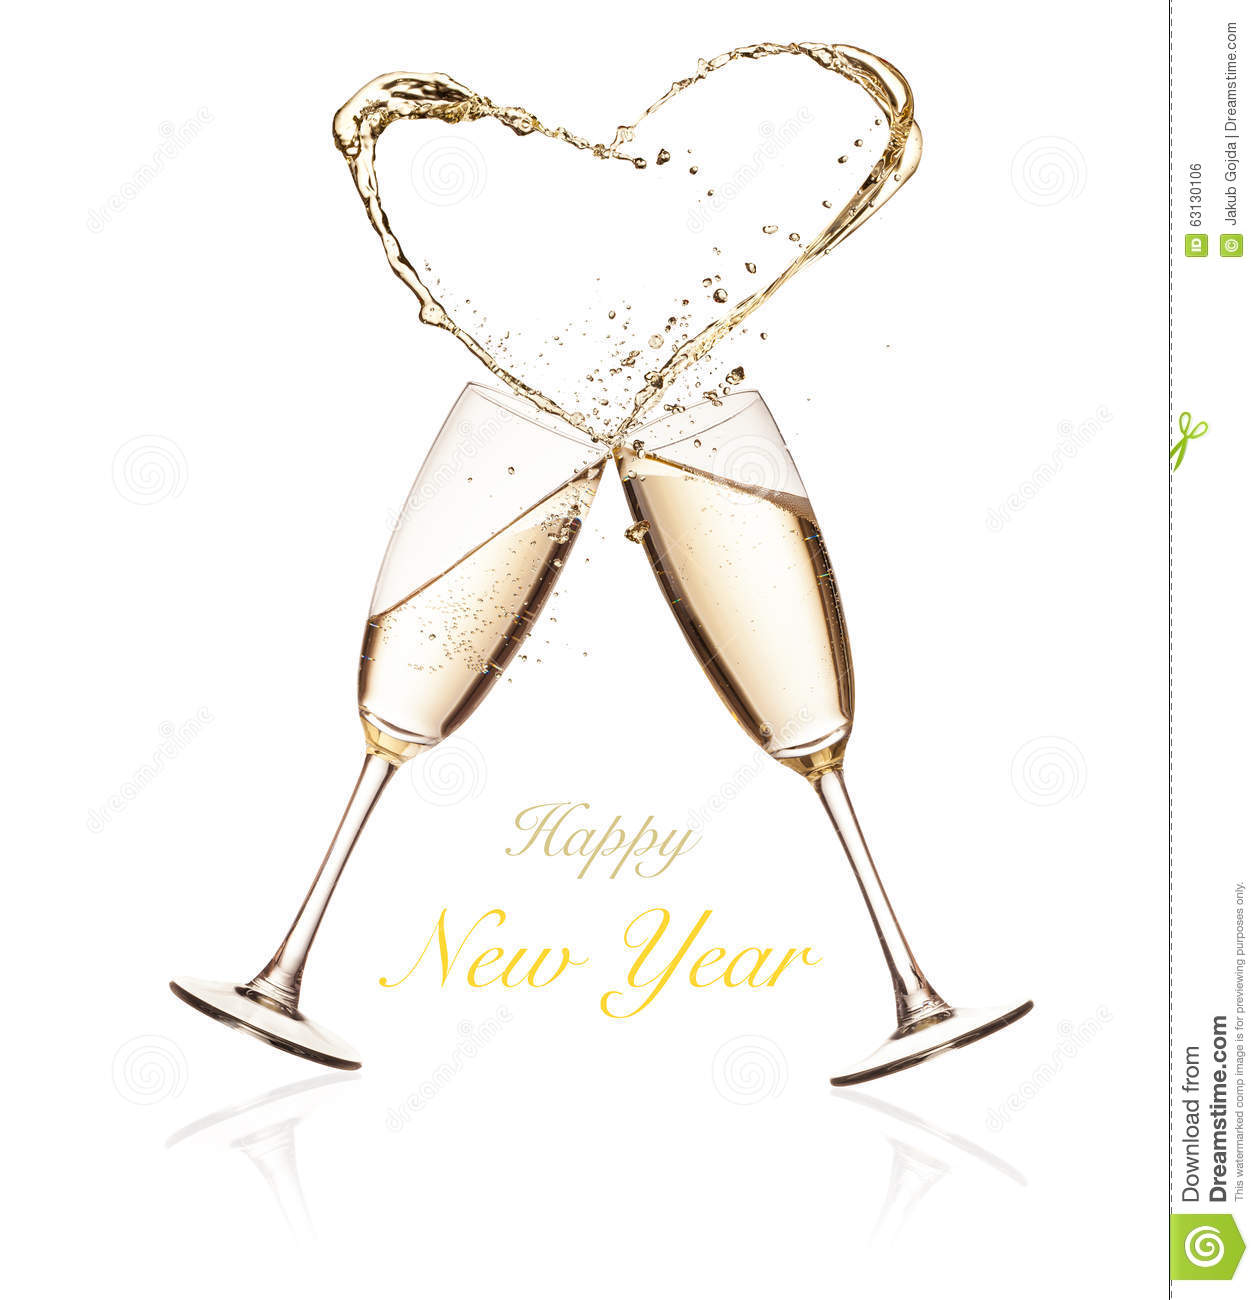 cb5c5b160366 Glasses Of Champagne With Splashing Heart On White Stock Photo ...